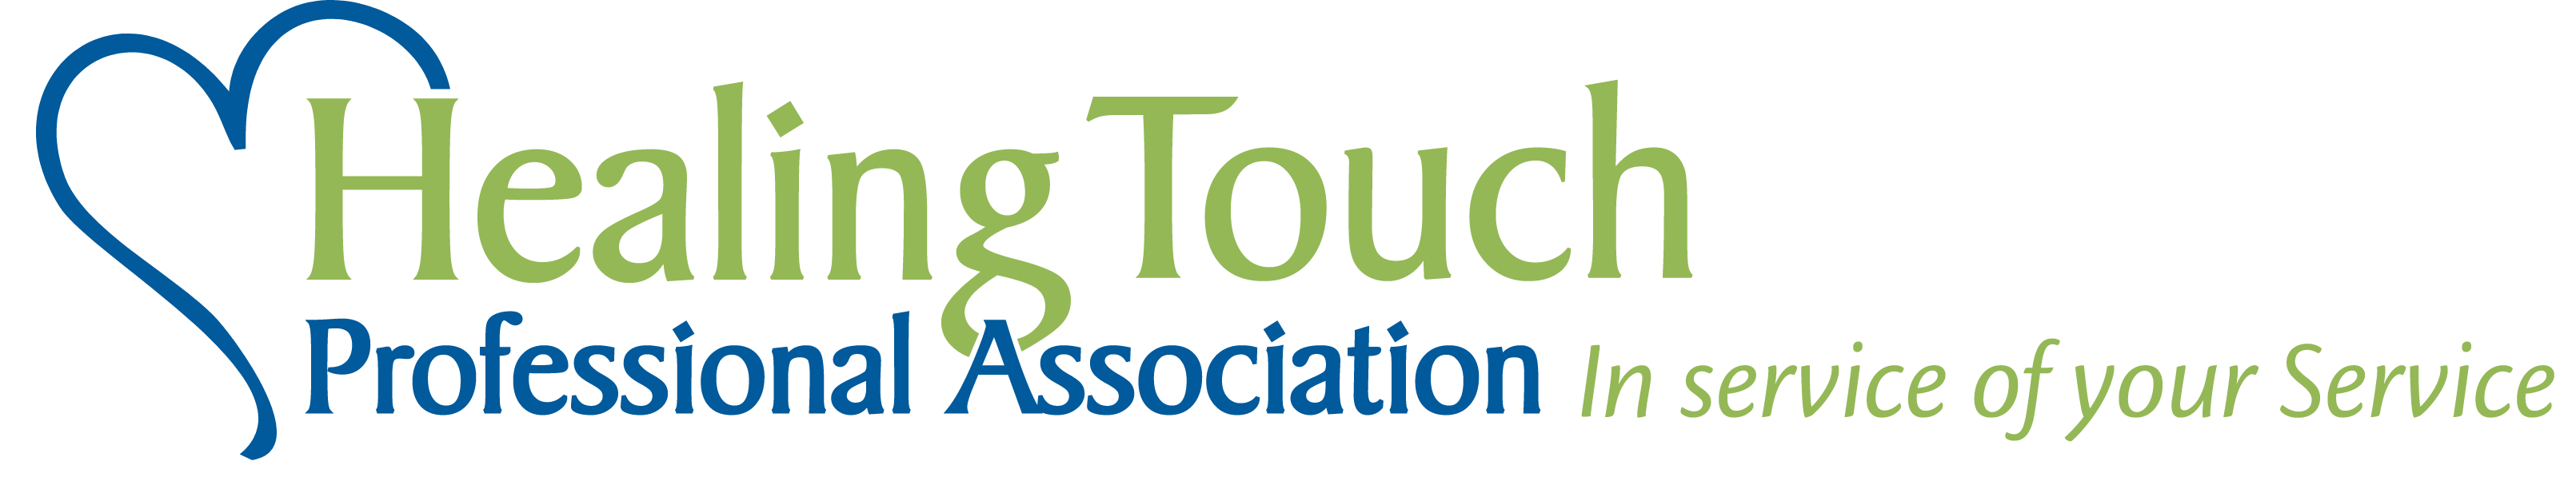 Liability Insurance - Healing Touch Professional Association